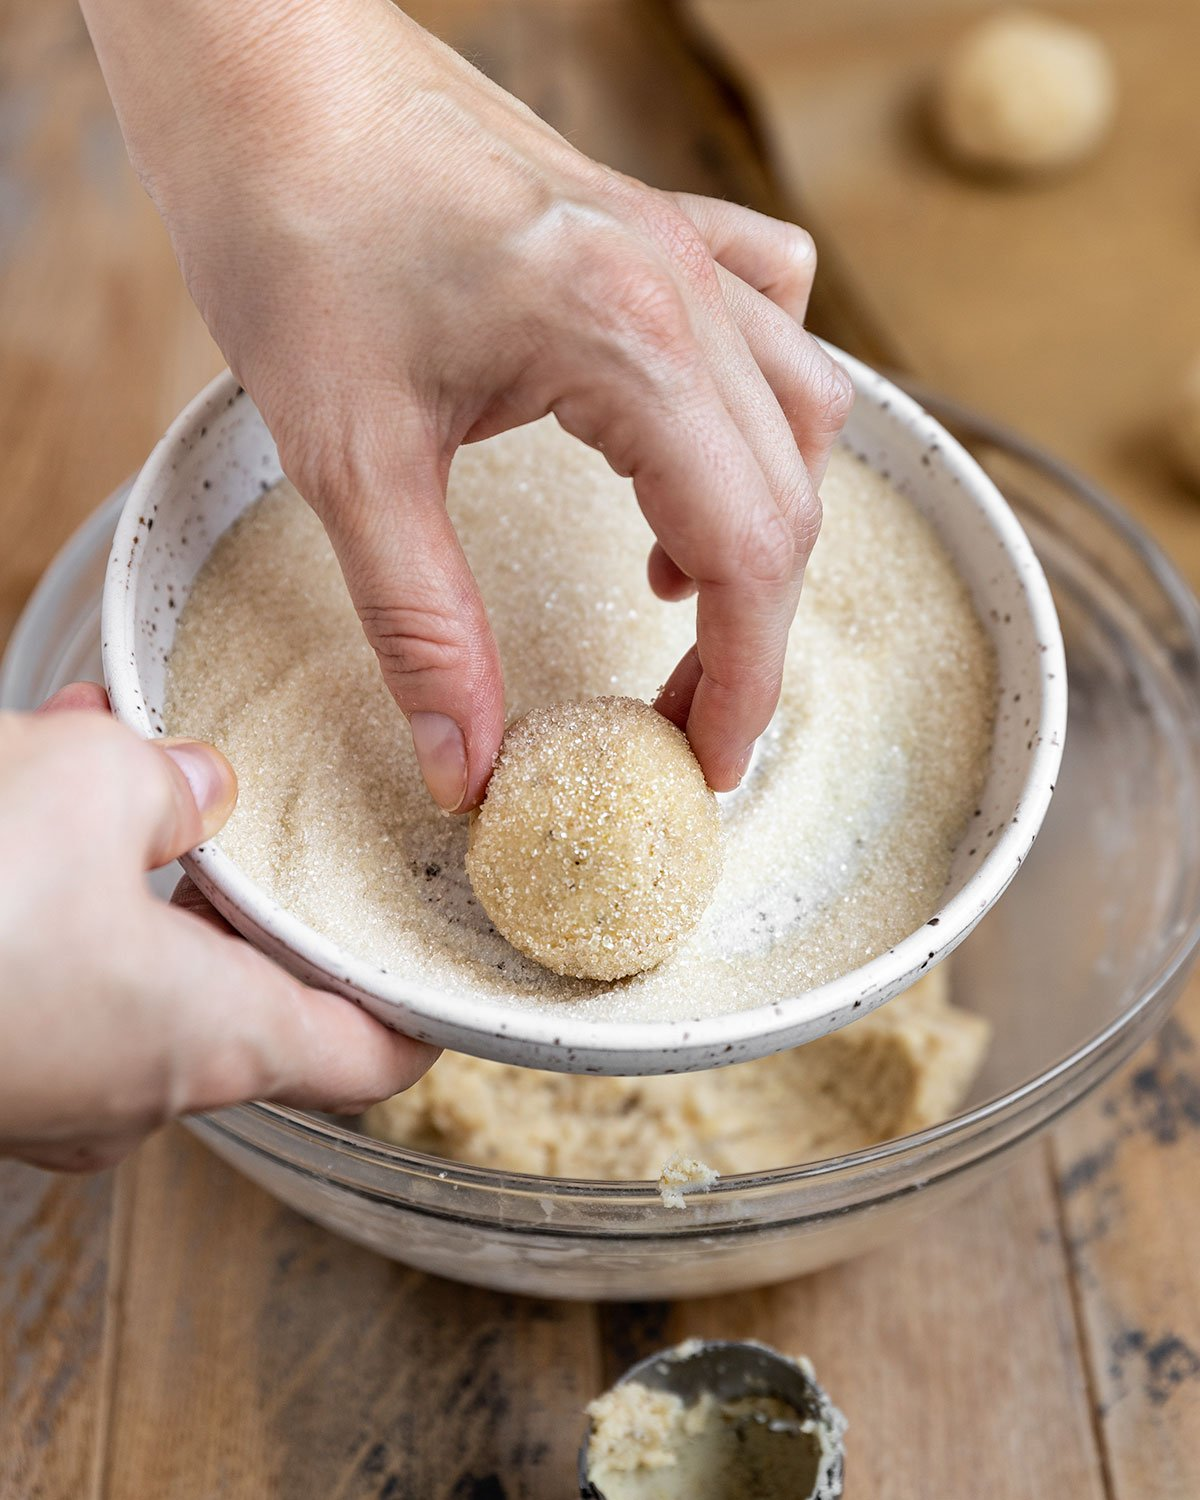 hand rolling a chamomile cookie dough ball in a bowl of sugar until it is coated